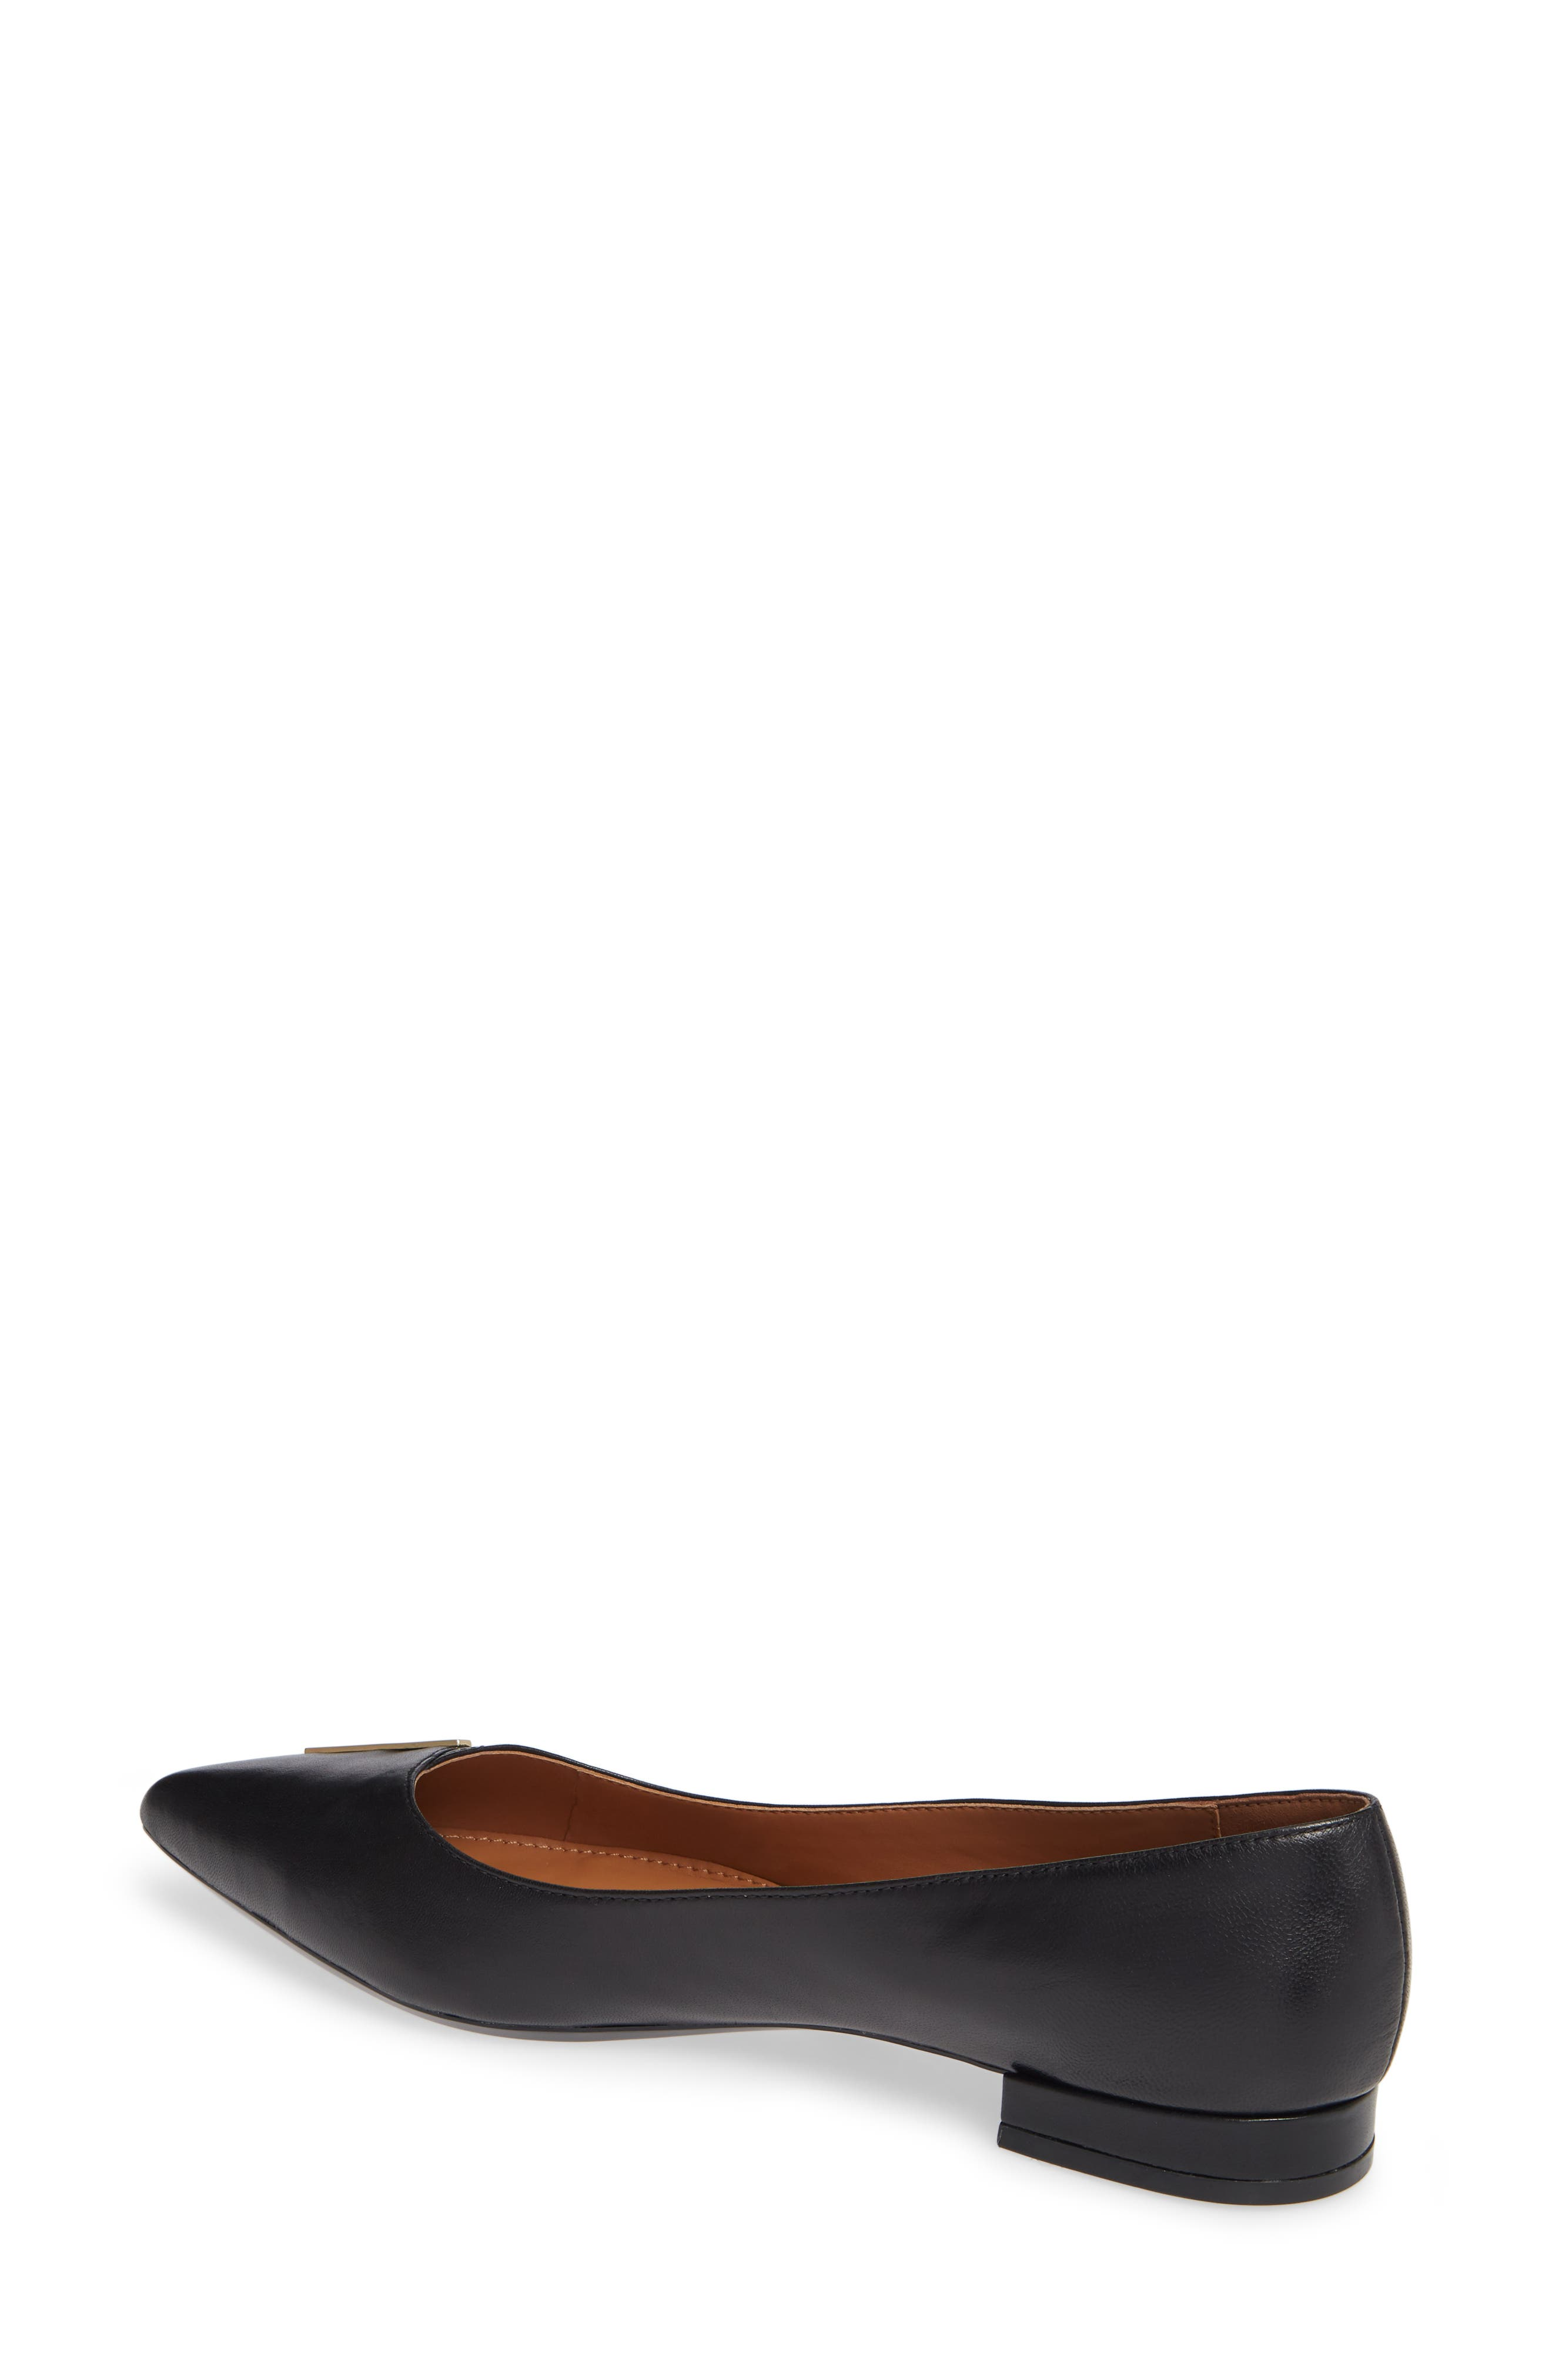 Arline Pointy Toe Flat,                             Alternate thumbnail 2, color,                             BLACK LEATHER